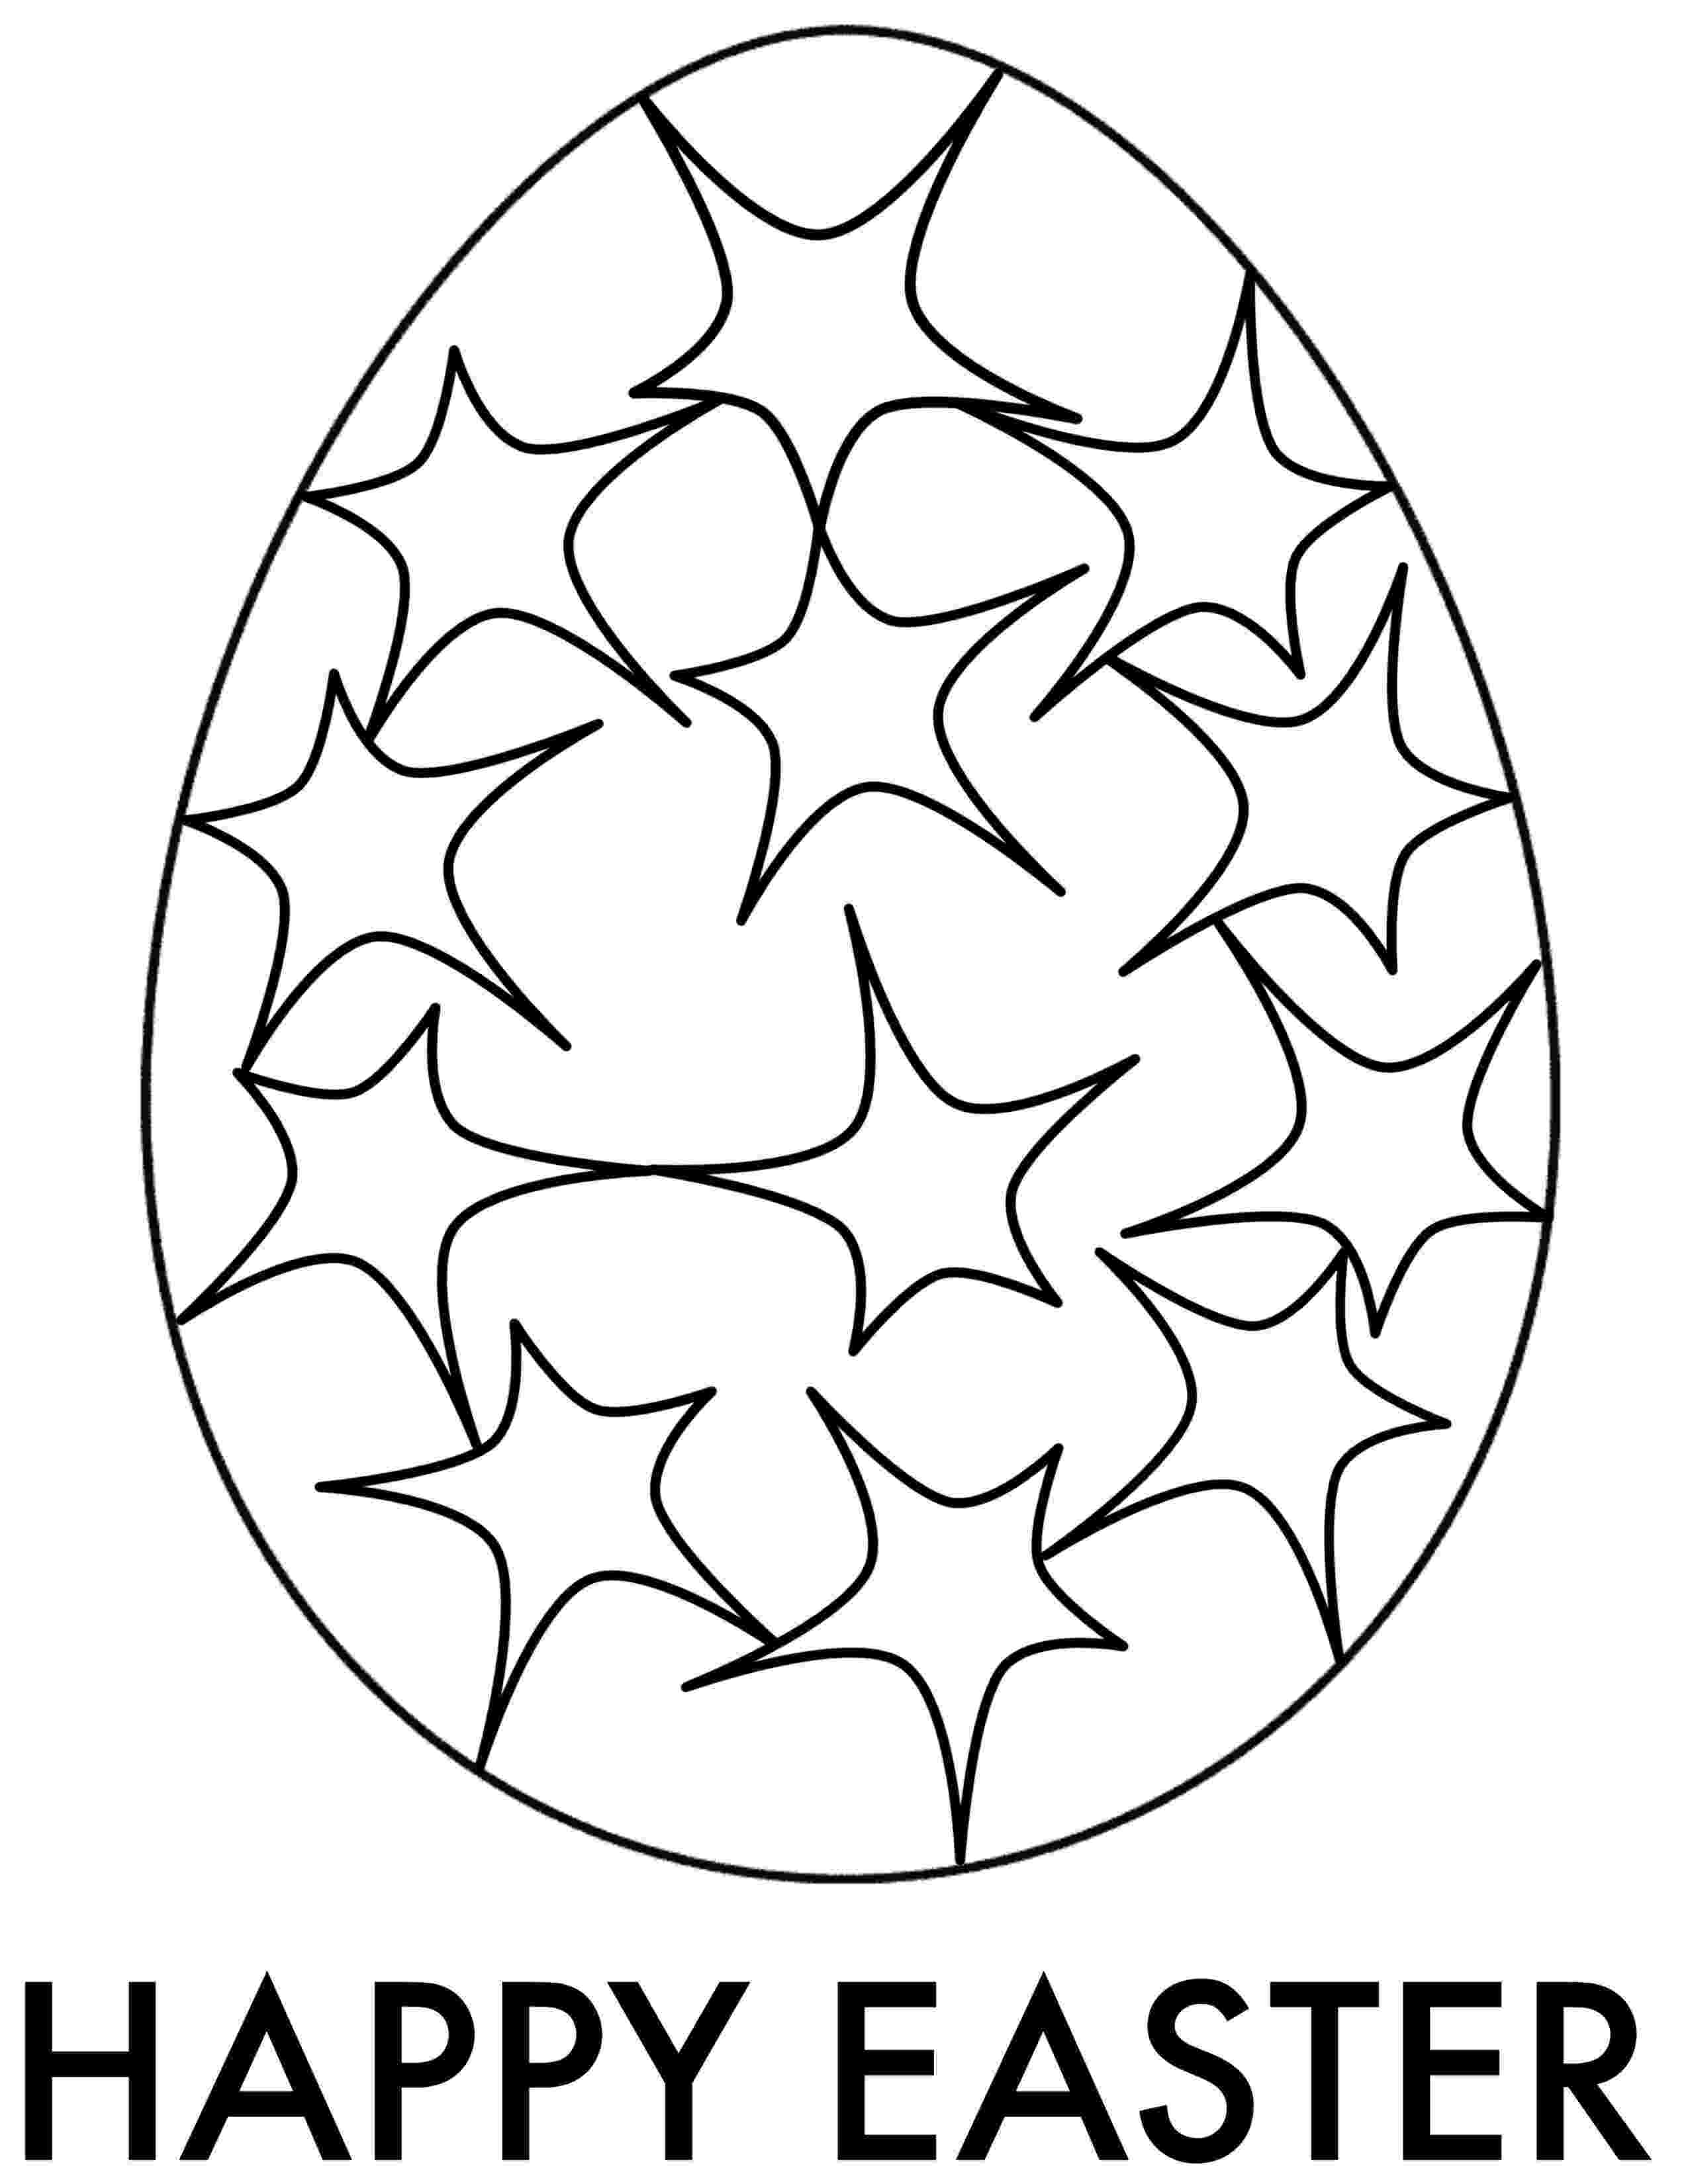 egg coloring pages easter adult coloring pages free printable downloads coloring egg pages